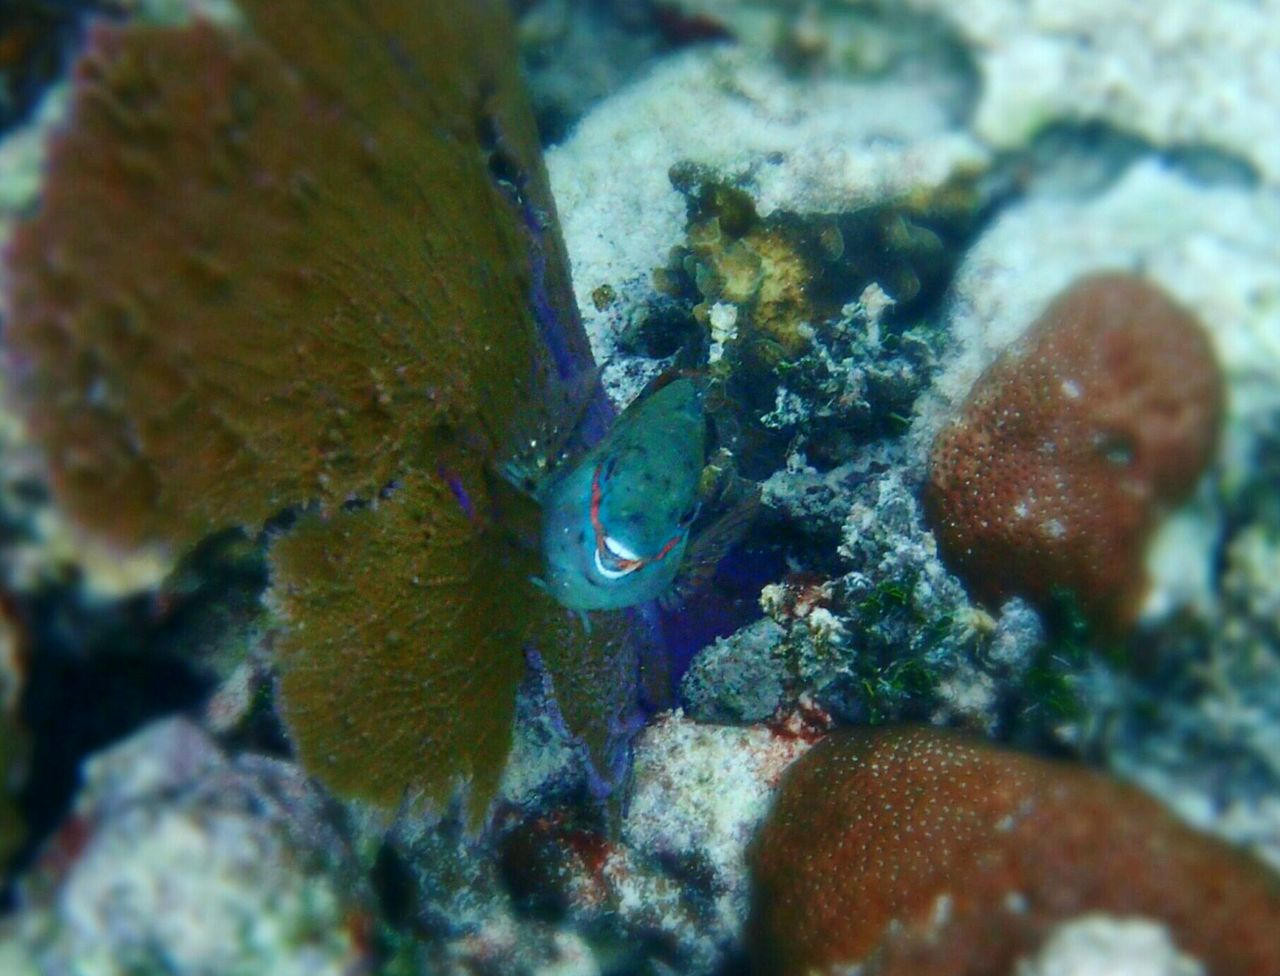 underwater, undersea, sea life, one animal, animal themes, animals in the wild, sea, no people, animal wildlife, coral, fish, close-up, nature, water, beauty in nature, camouflage, day, outdoors